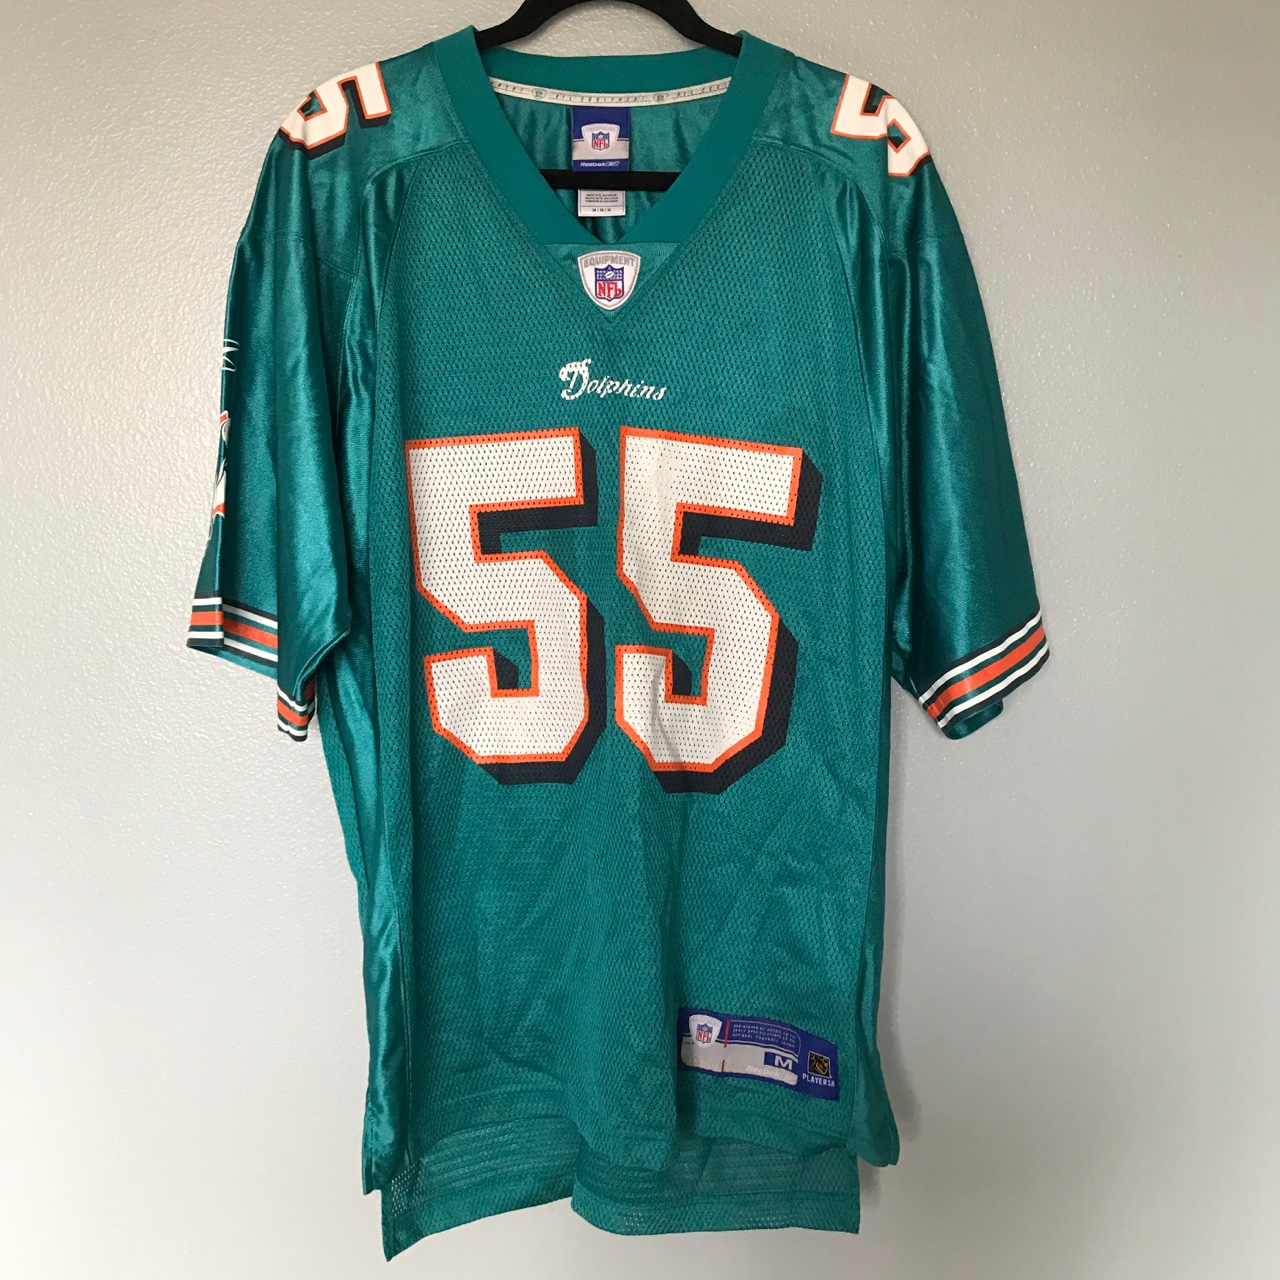 huge selection of fbe2f ac0a1 Authentic Miami Dolphins Jersey Size medium No rips... - Depop